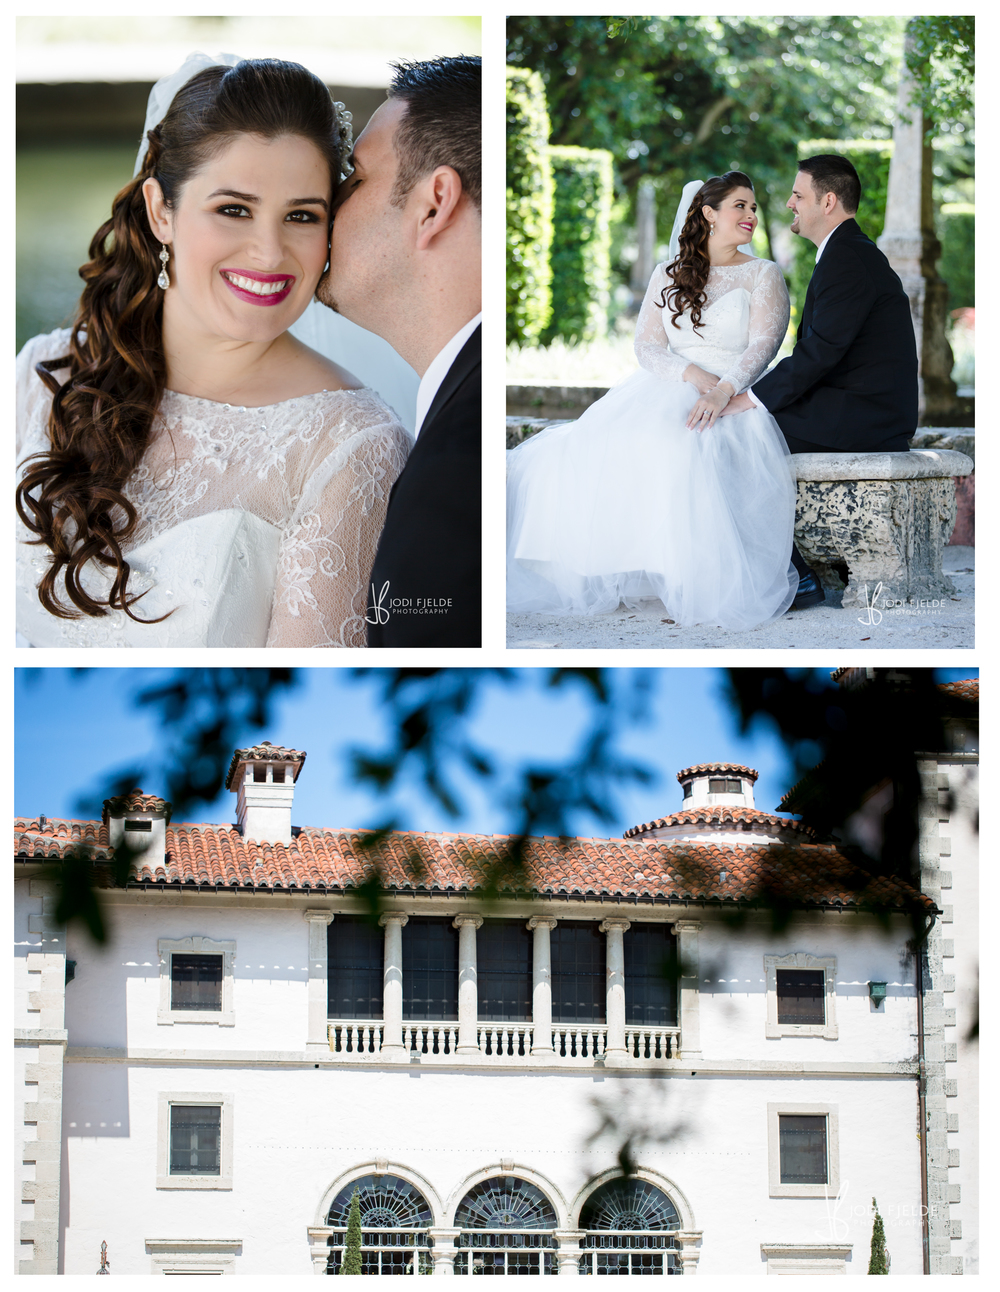 Vizcaya_Miami_Florida_Bridal_Wedding_Portraits_Jodi_Fjelde_Photography-1.jpg